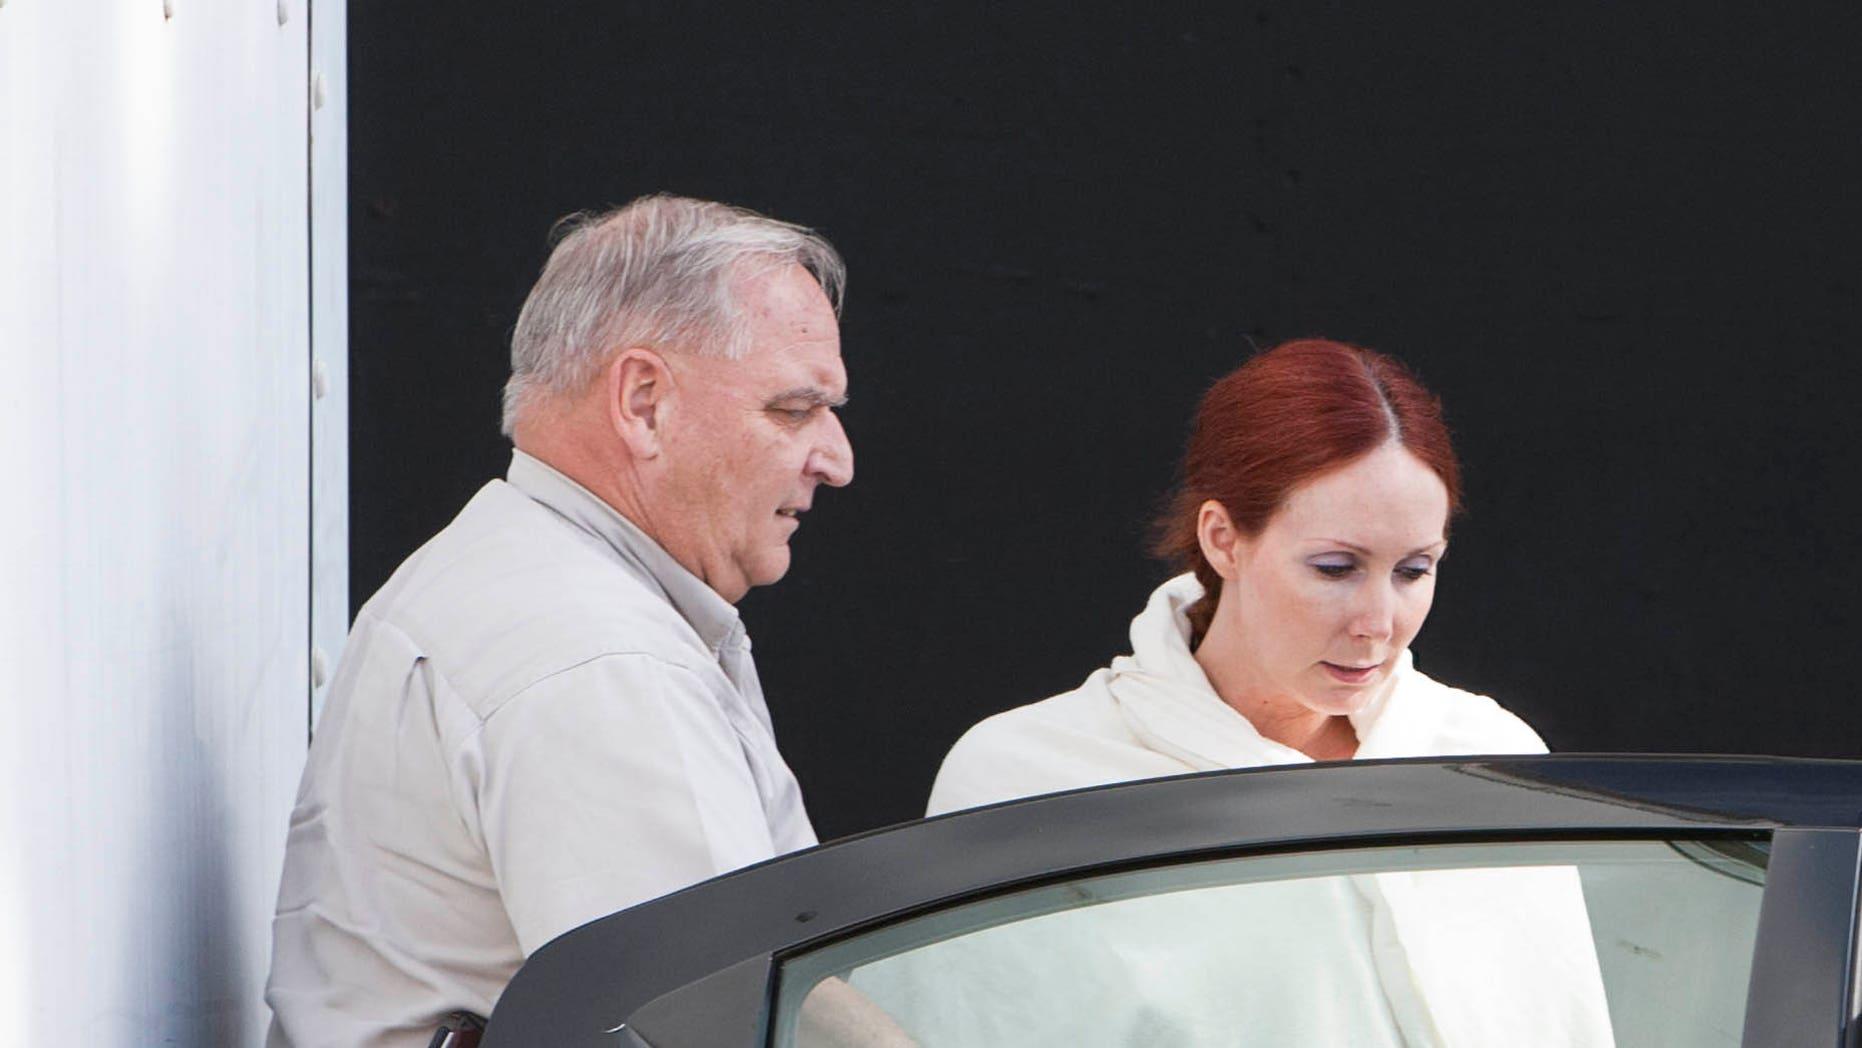 File - In this June 7, 2013 file photo, Shannon Richardson is placed into a Titus County Sheriff's car after an initial appearance at the federal building Texarkana, Texas.  A federal grand jury has indicted an Richardson, who authorities say sent ricin-laced letters to President Barack Obama and others in an attempt to frame her estranged husband. (AP Photo/The Texarkana Gazette, Curt Youngblood, File) MANDATORY CREDIT